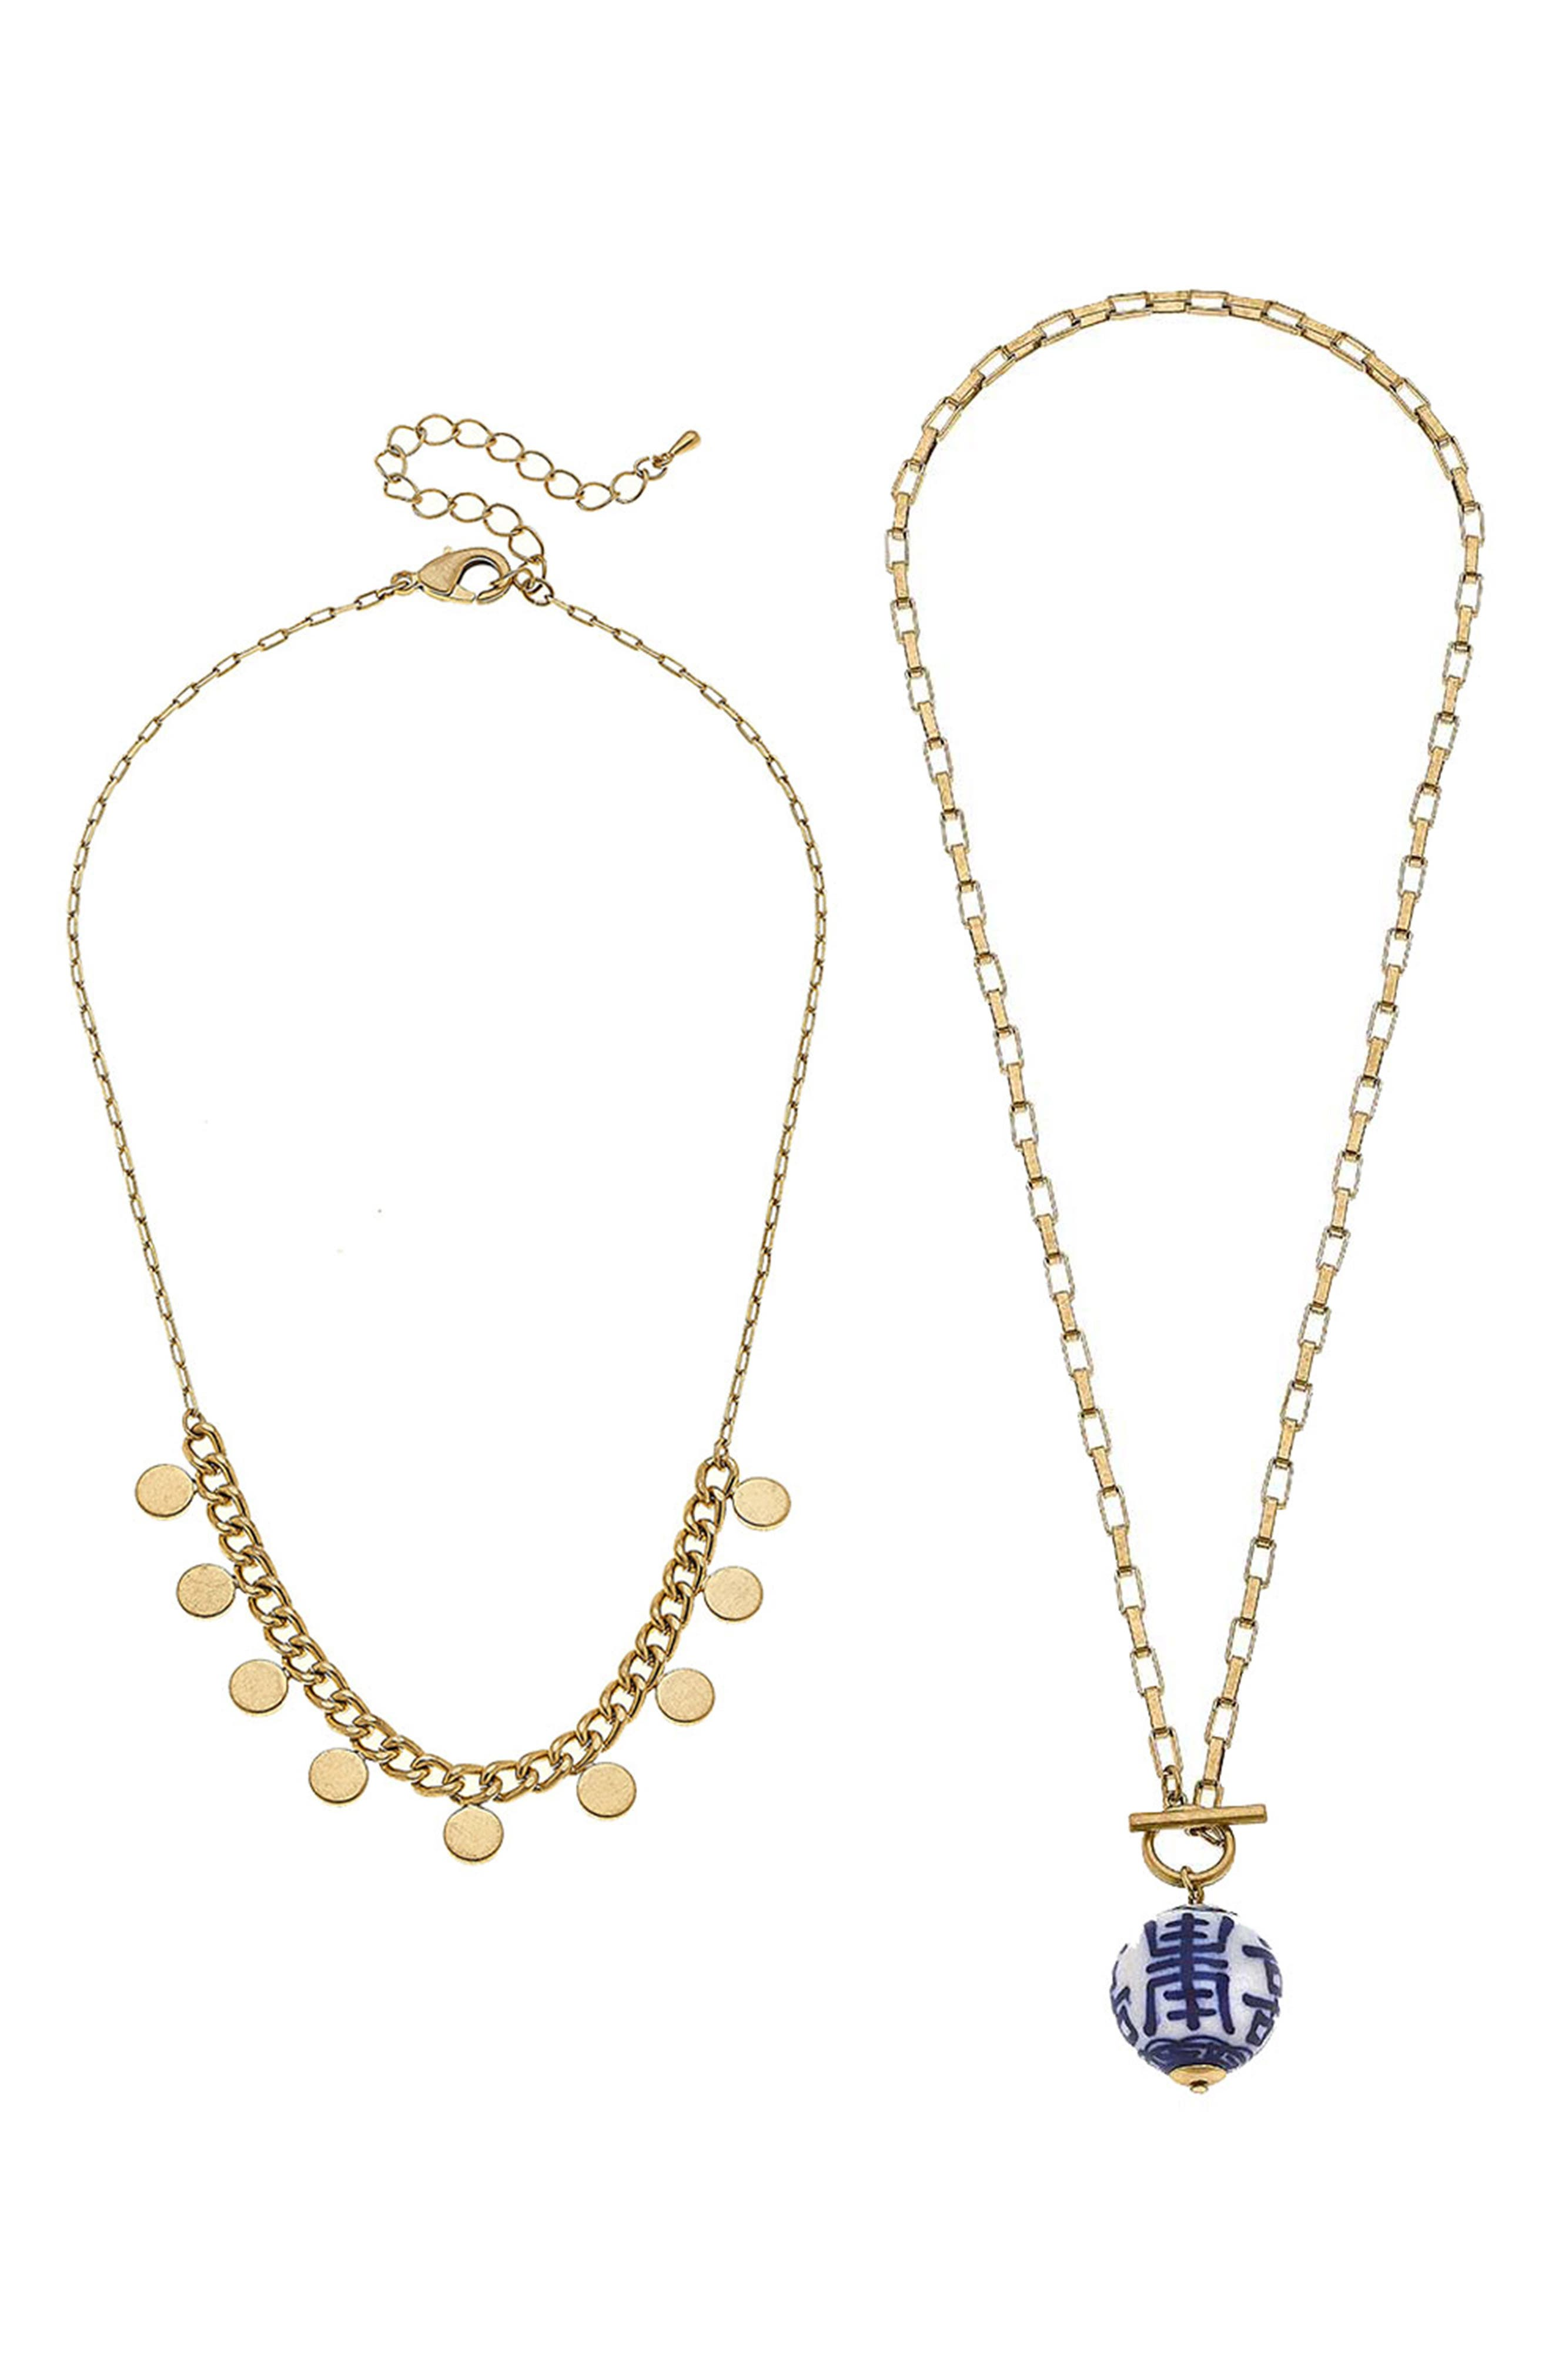 Two-Piece Chinoiserie Necklace Set